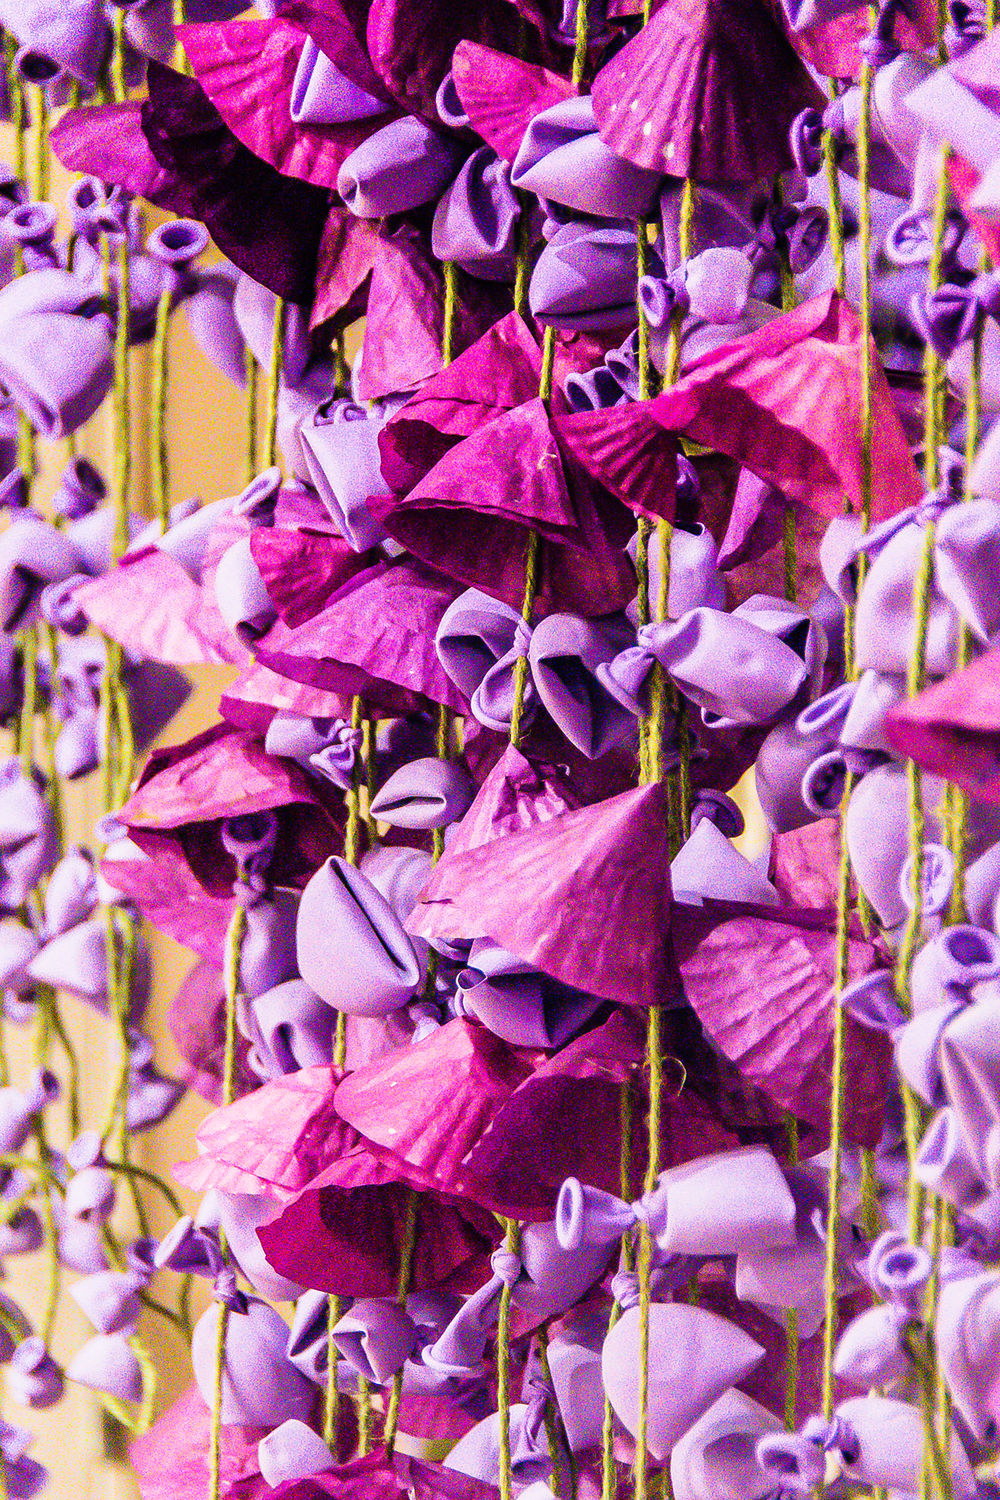 Purple Shop Display - Cottrell & Co. - CC1_0350.png